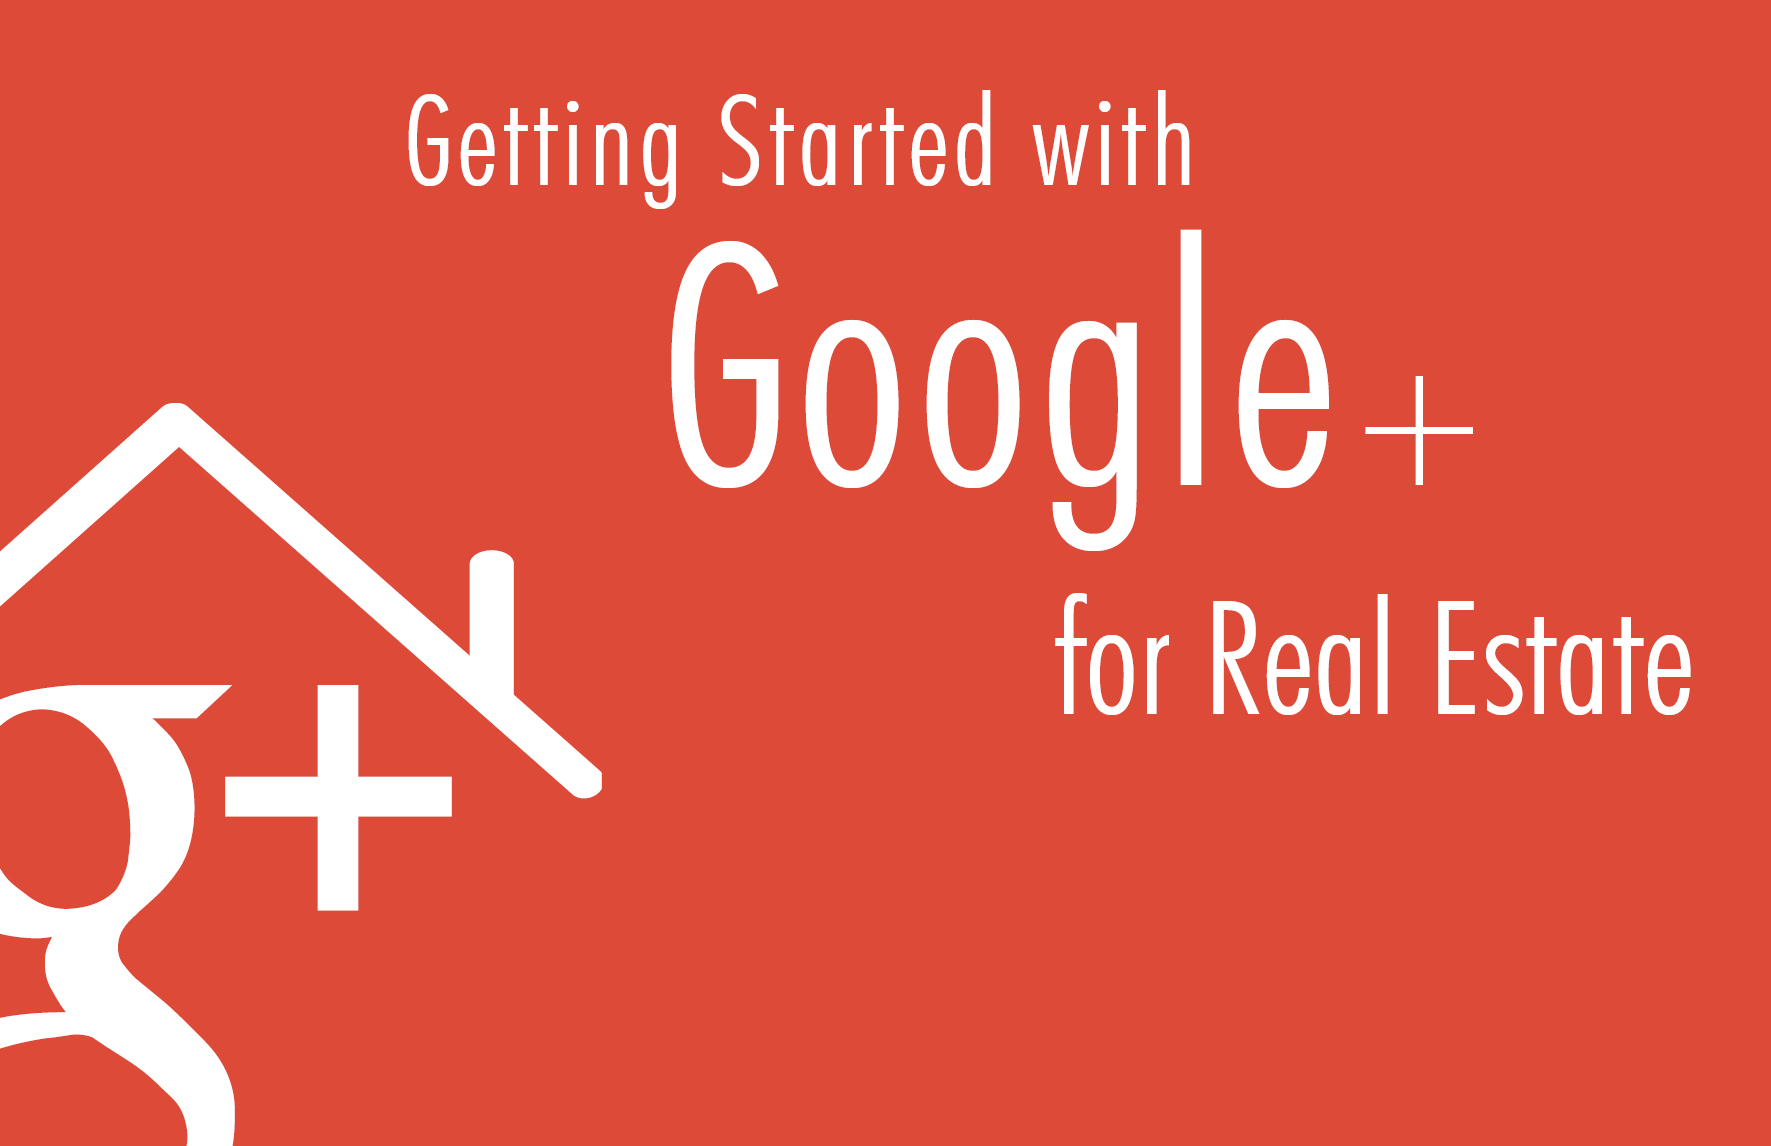 Google+ for Real Estate Whitepaper